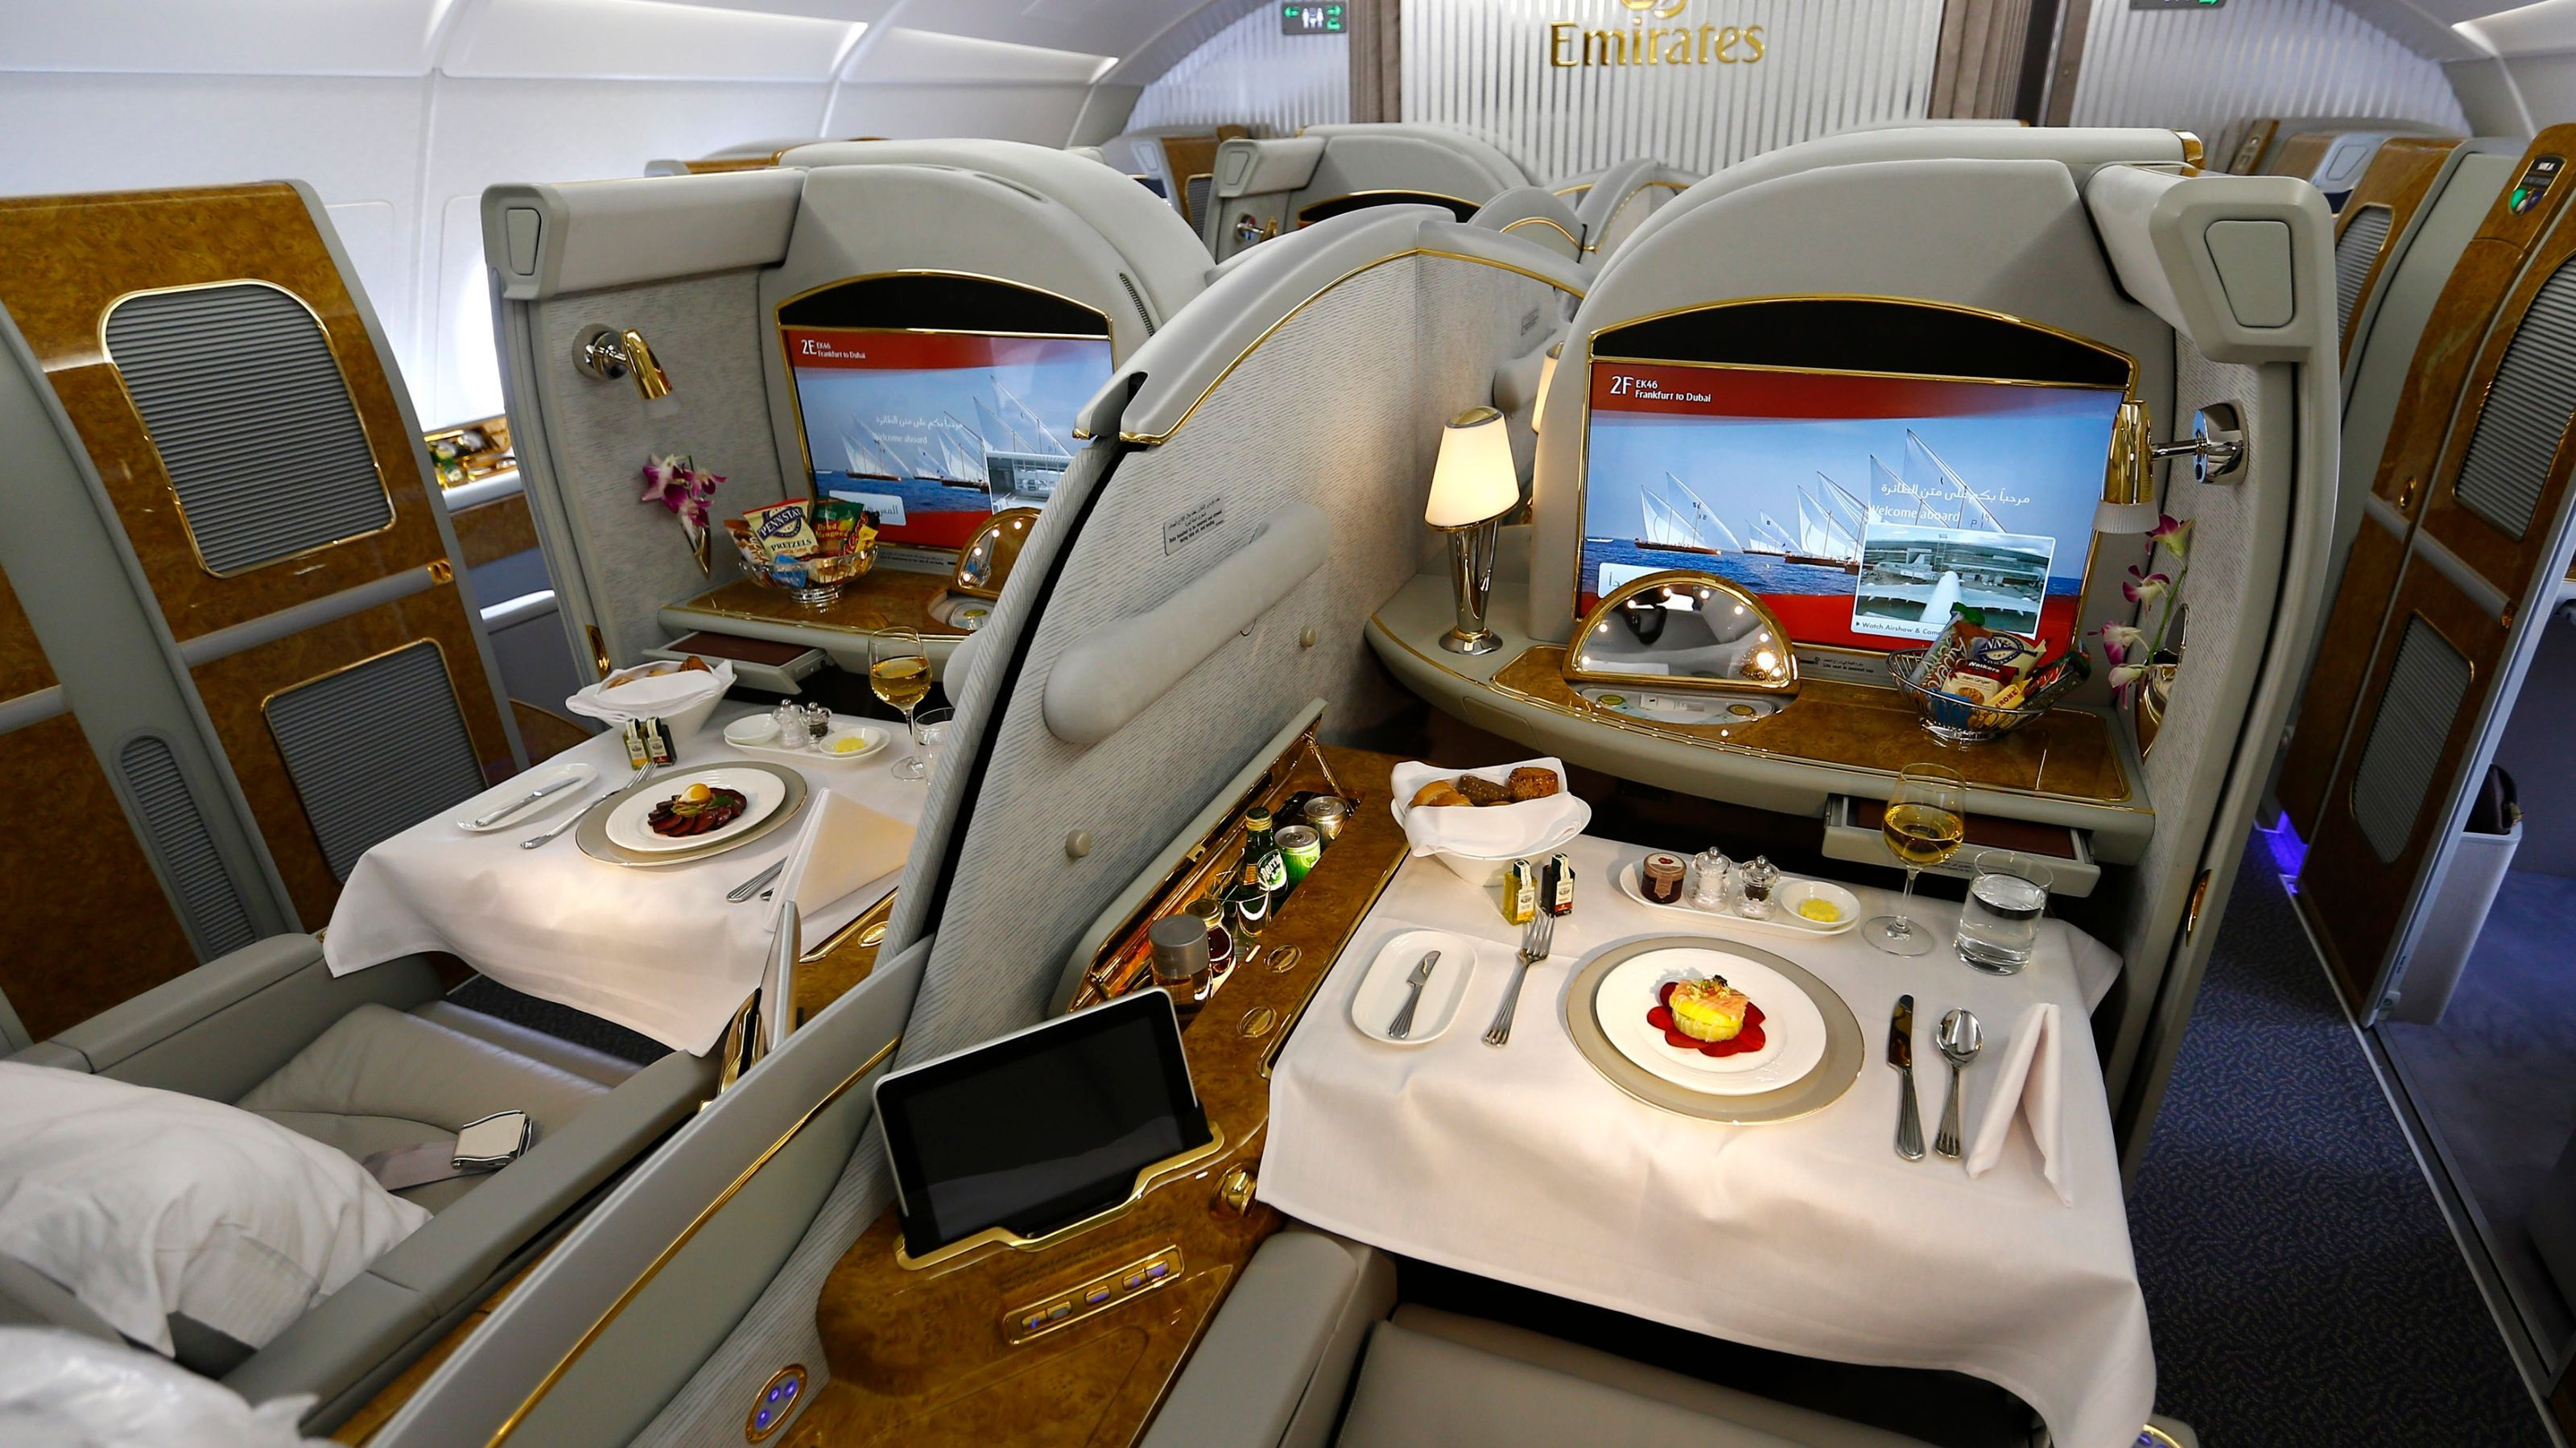 The Complete Guide To Faking Your Own Business Class Upgrade